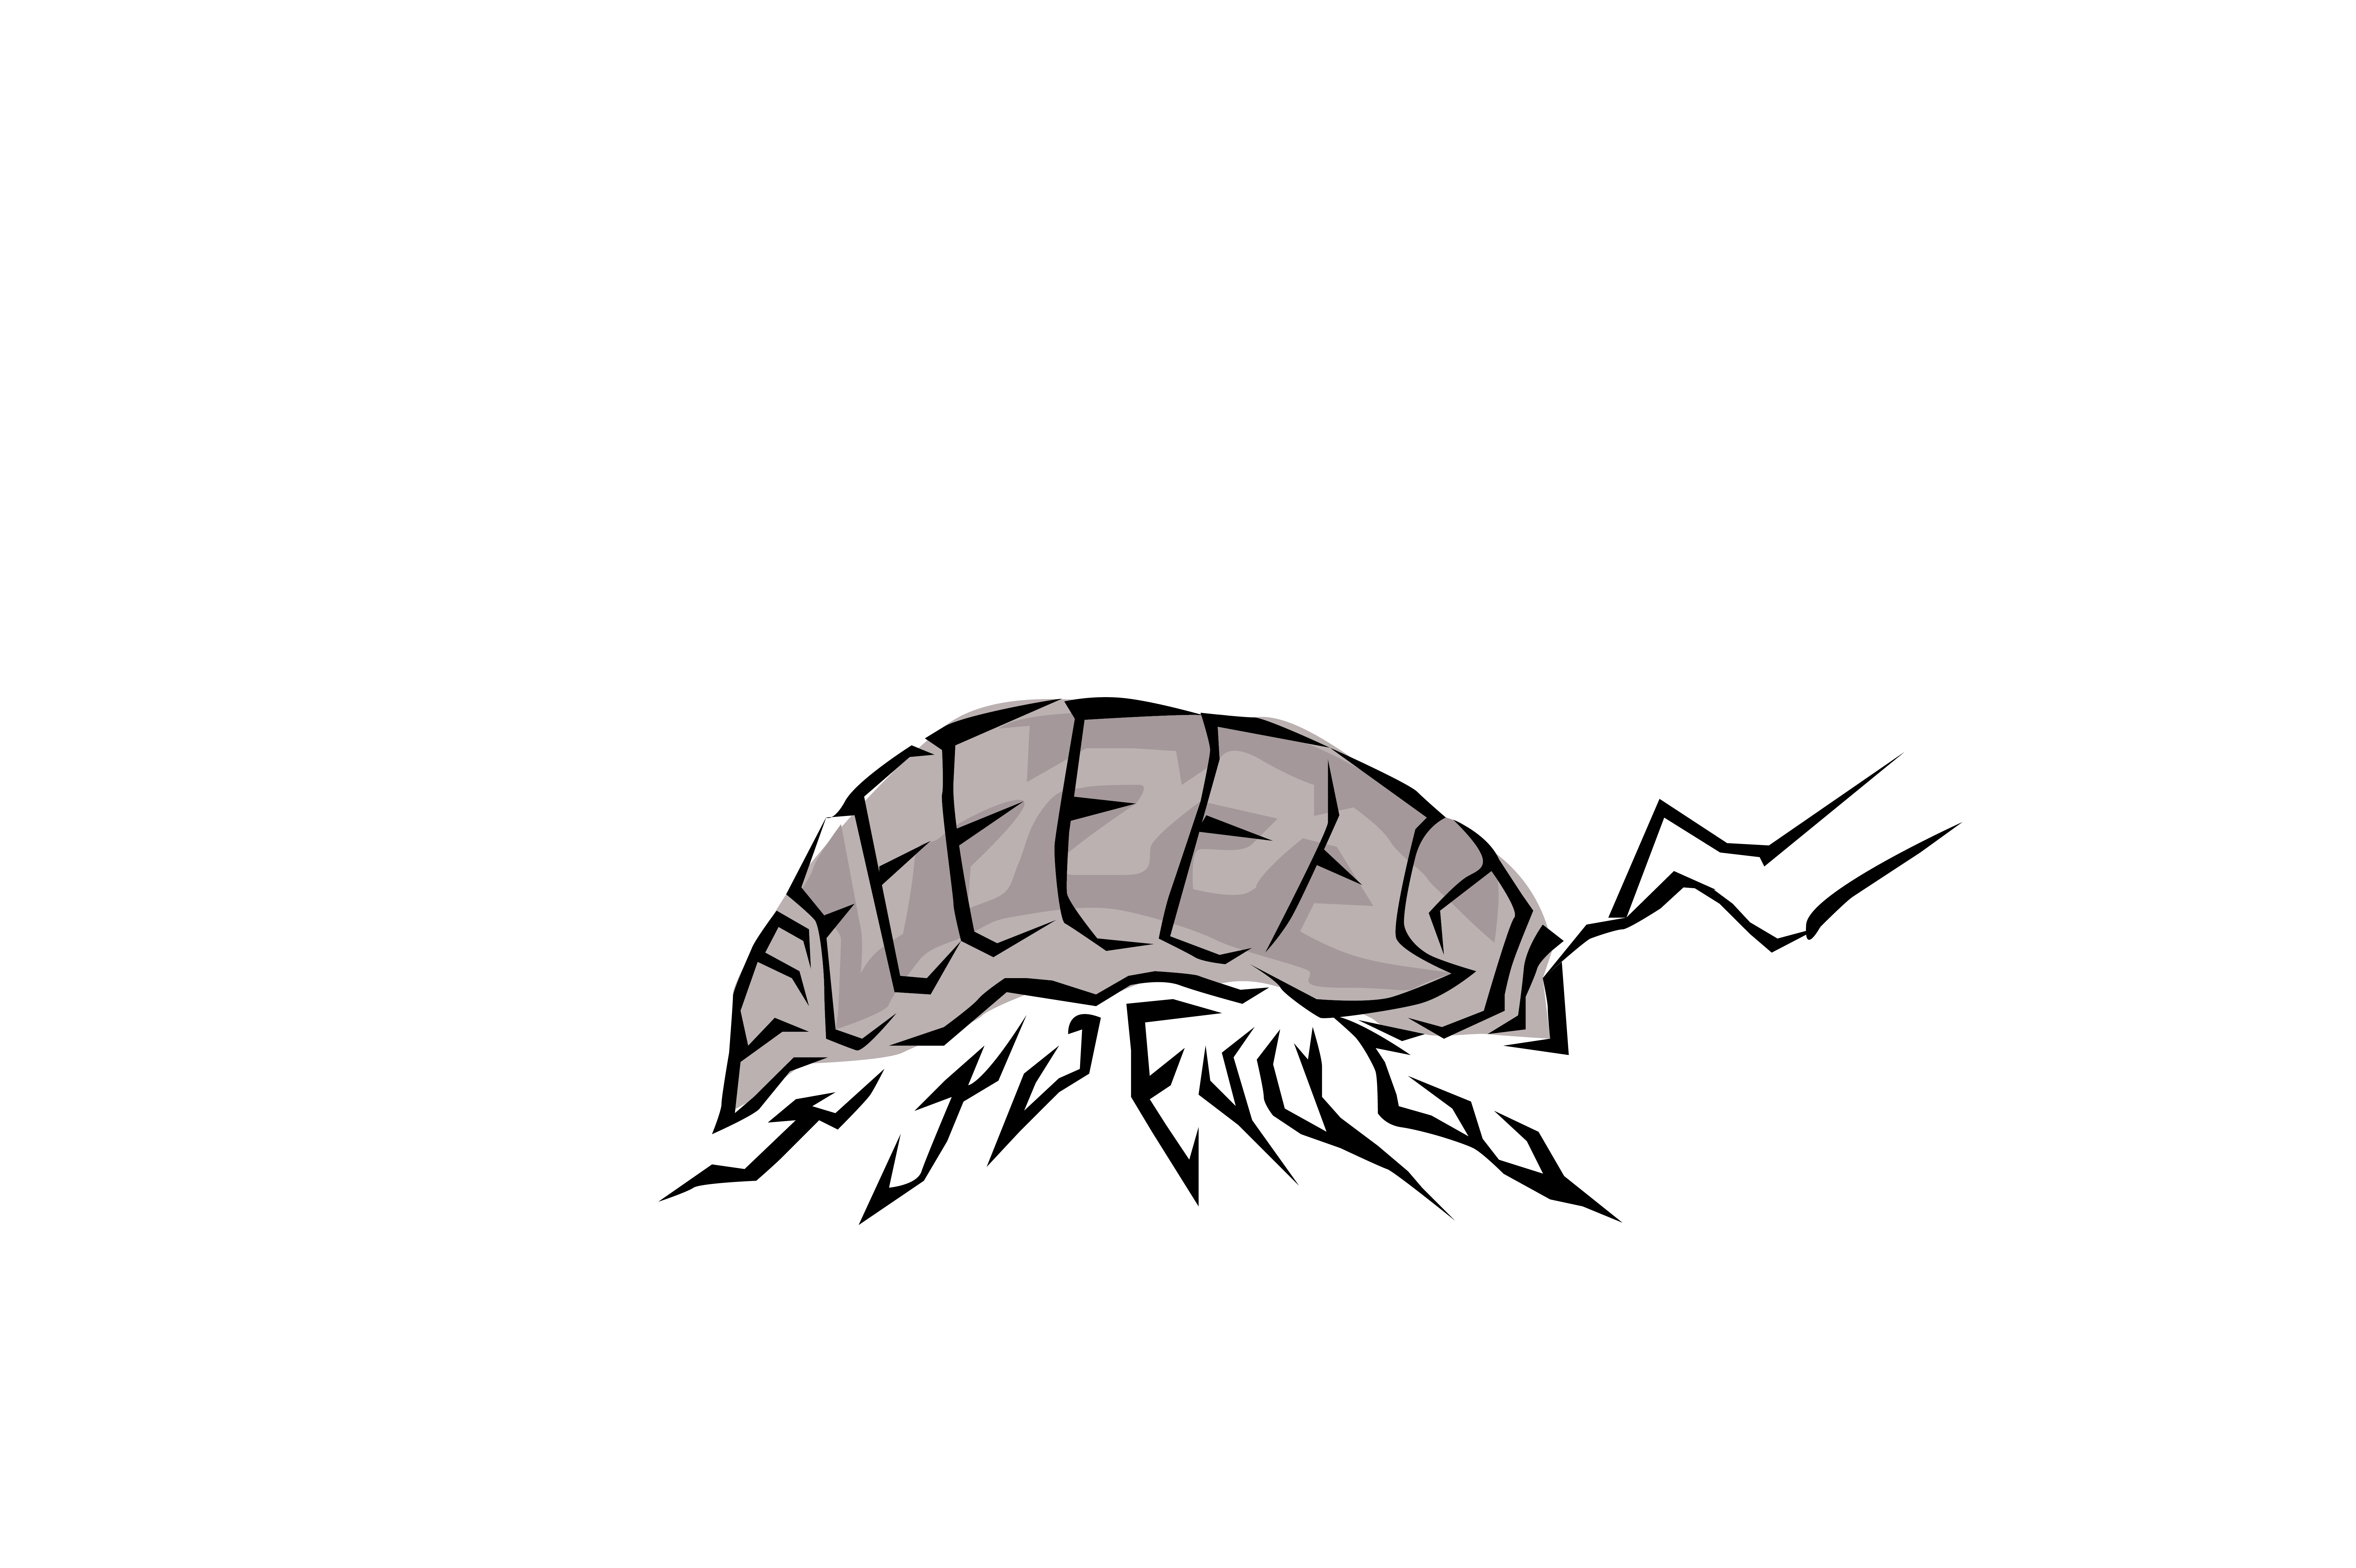 Download Free Insect Illustration Pill Bug Graphic By Rfg Creative Fabrica for Cricut Explore, Silhouette and other cutting machines.